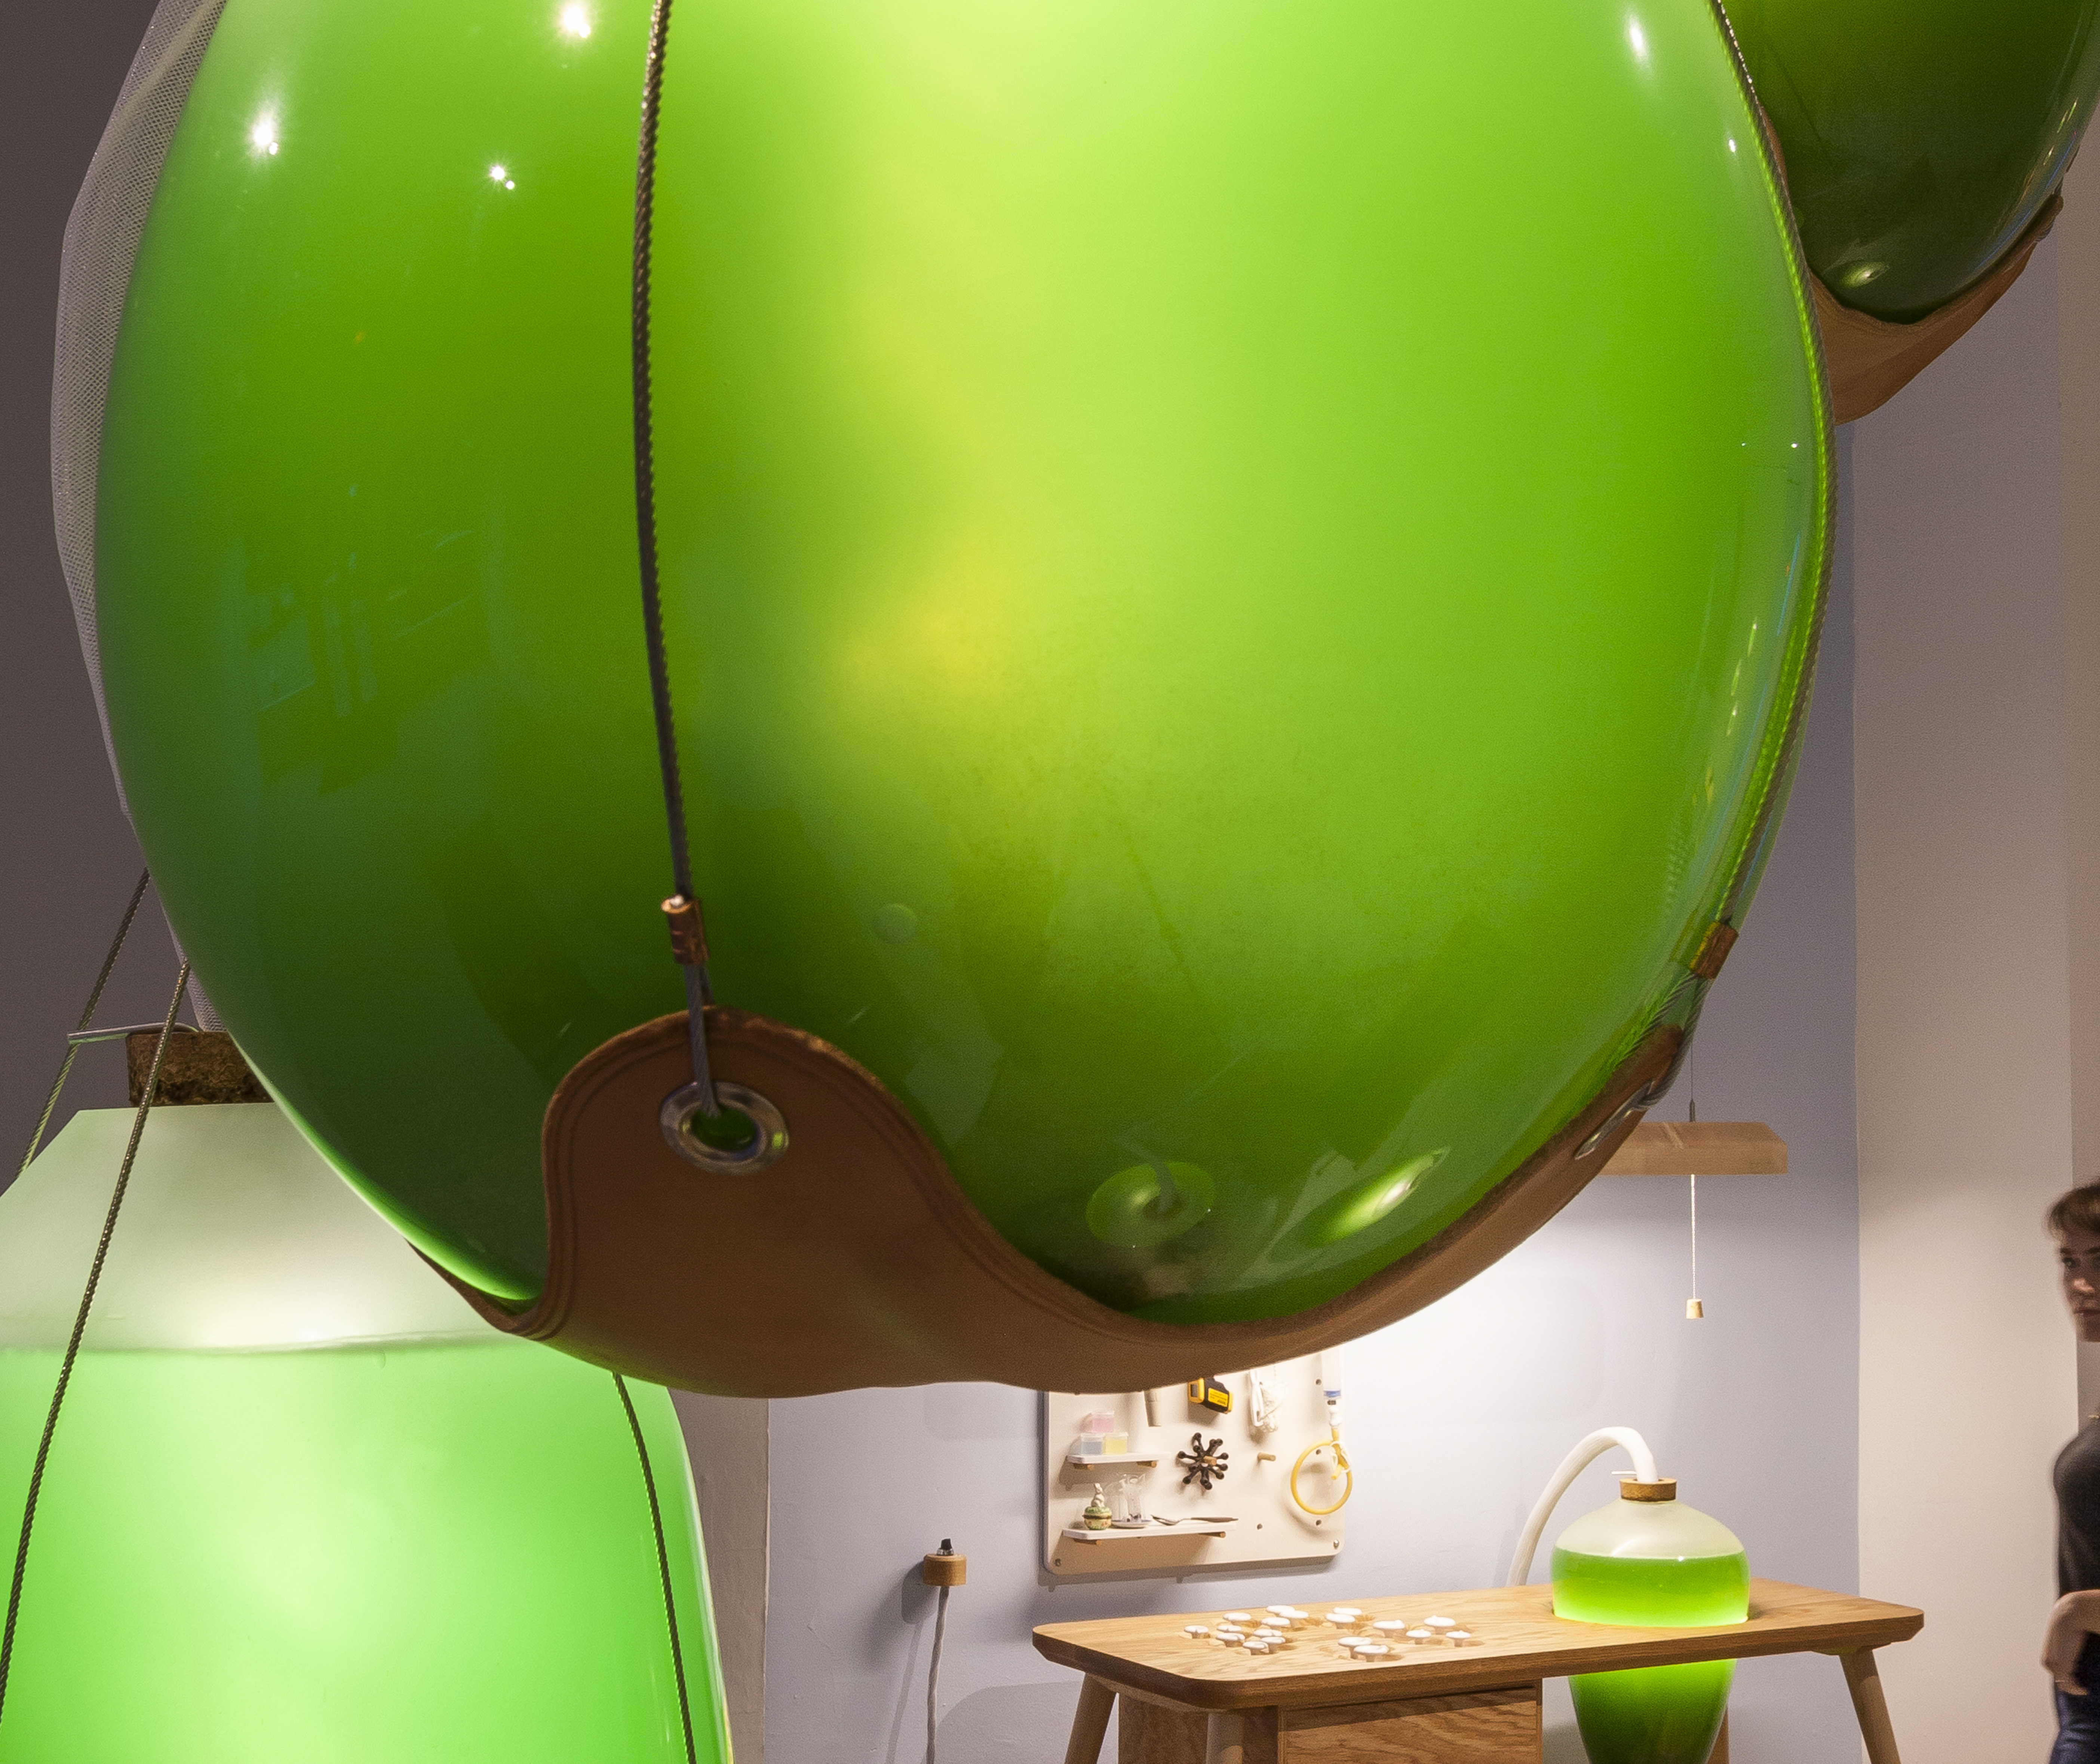 Lamps filled with glowing, living algae